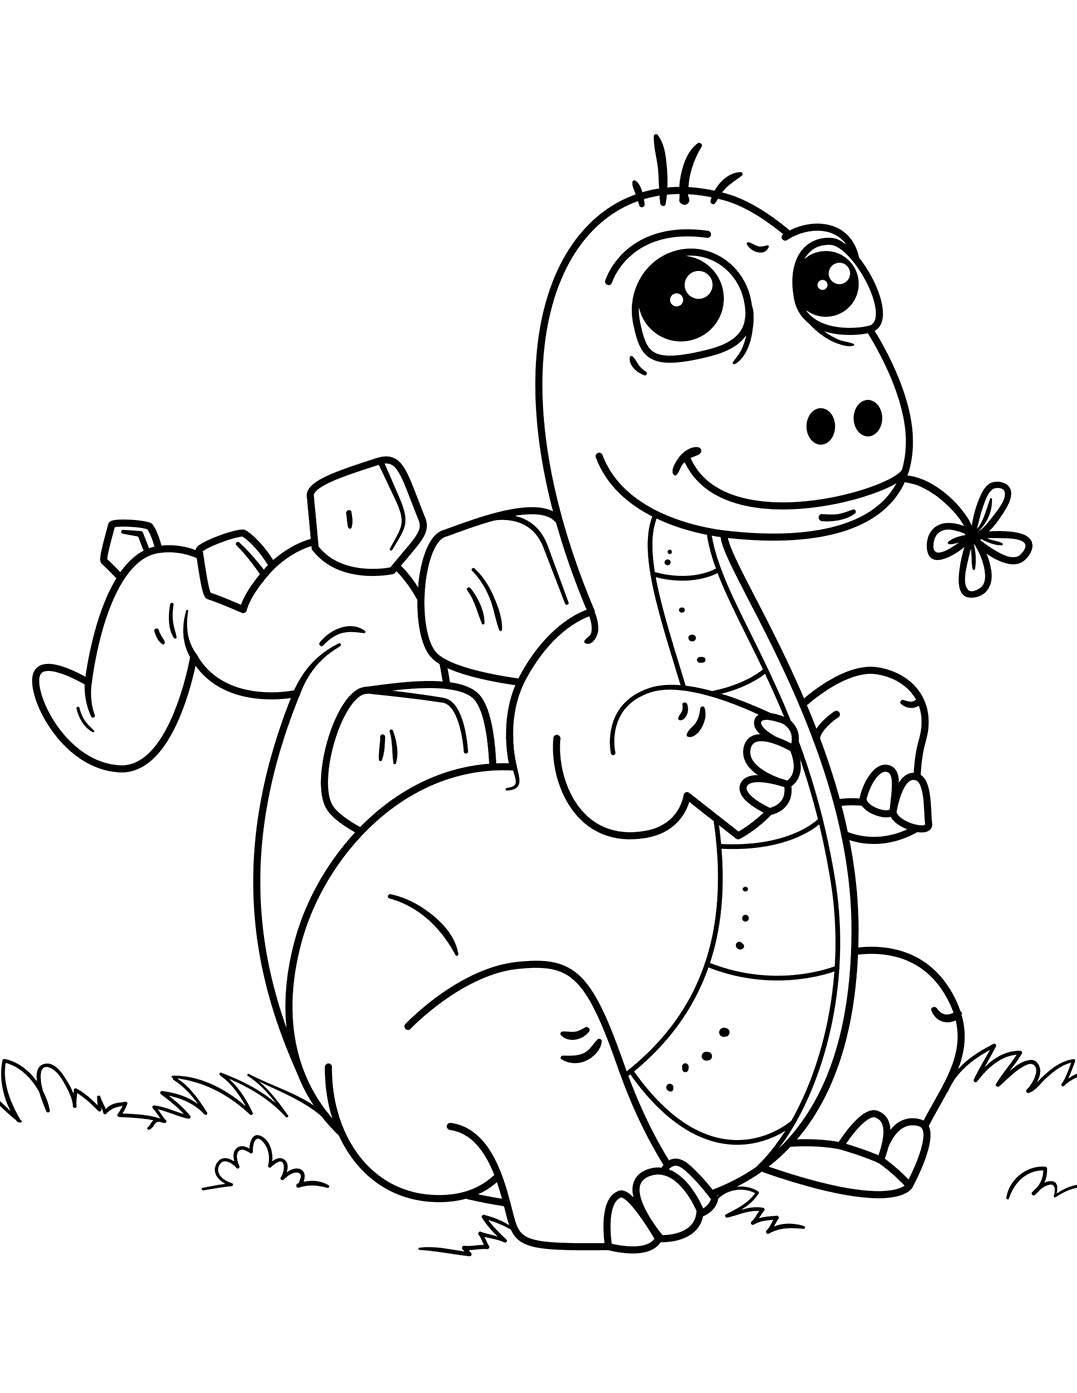 dinosaur pictures to colour in coloring pages dinosaur free printable coloring pages pictures in to dinosaur colour